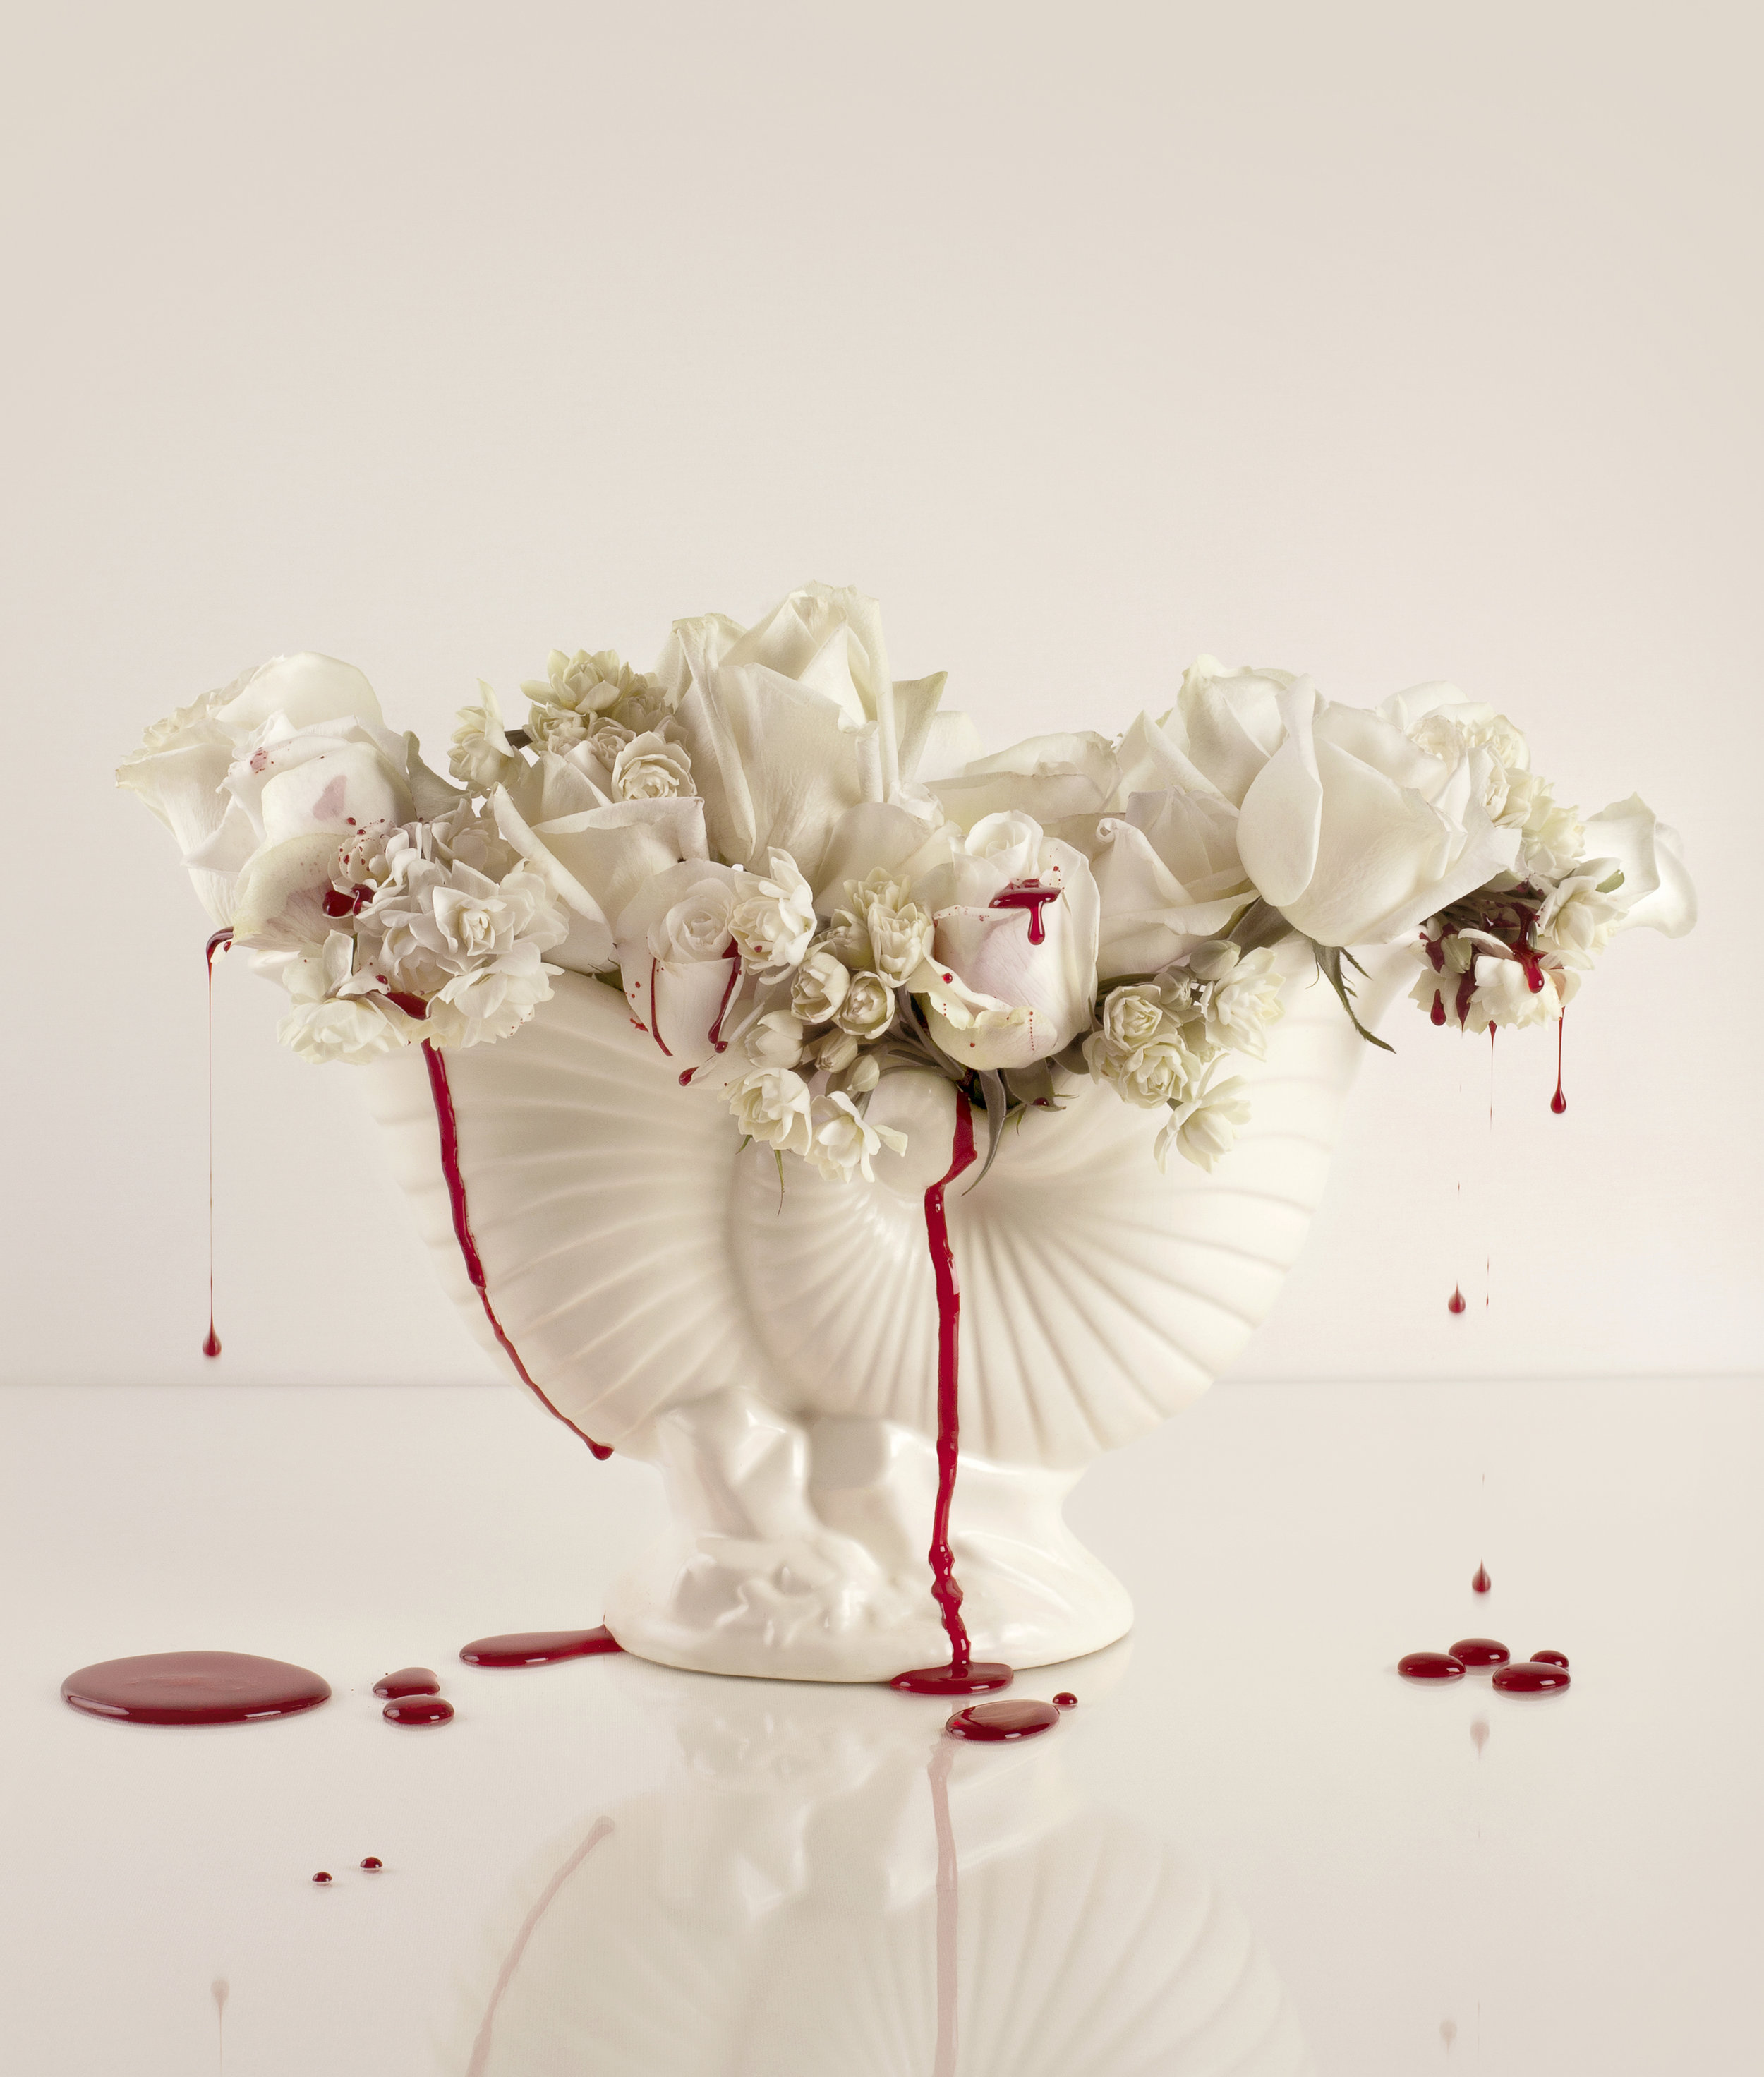 Blood & Roses (13) - colour photograph, edition of 5 + AP